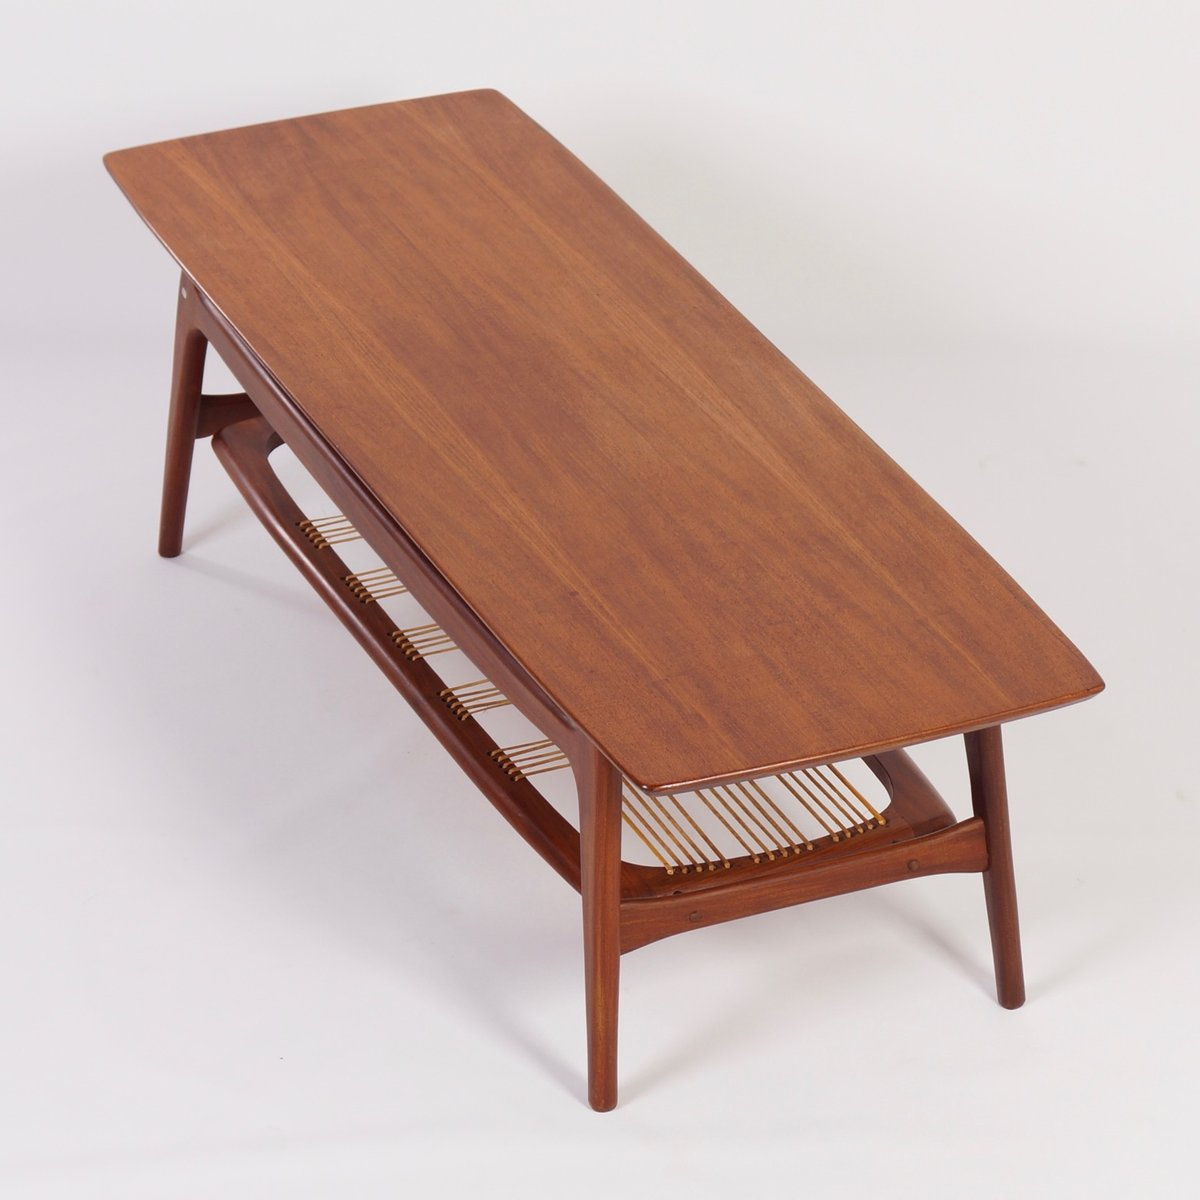 Teak Oil Coffee Table: Teak Coffee Table By Louis Van Teeffelen For Wébé, 1960s